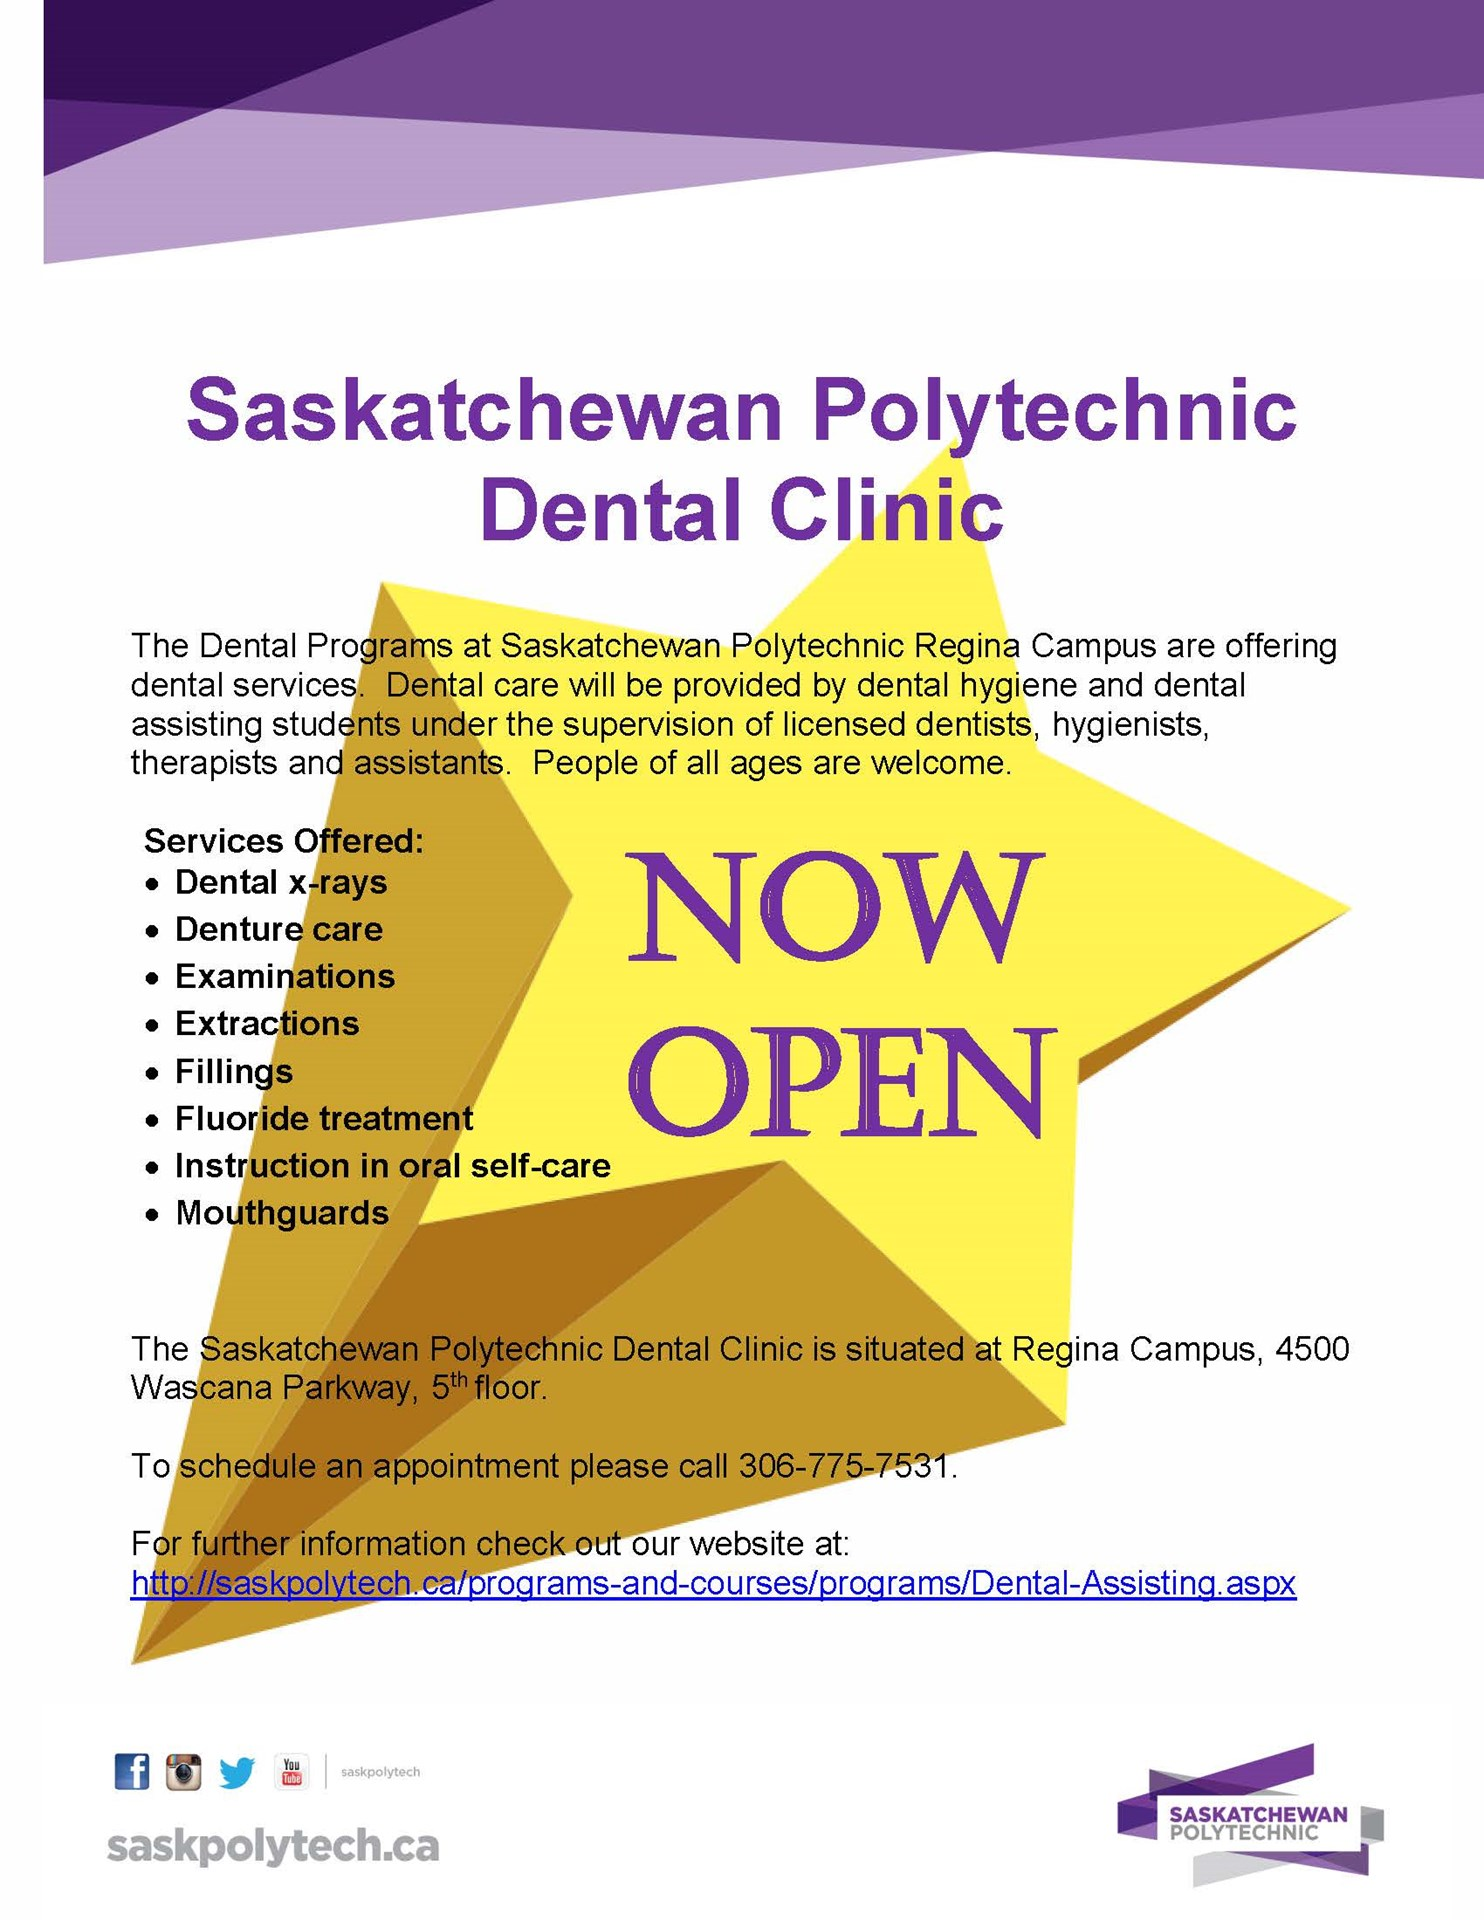 Saskatchewan Polytechnic Dental Clinic.jpg